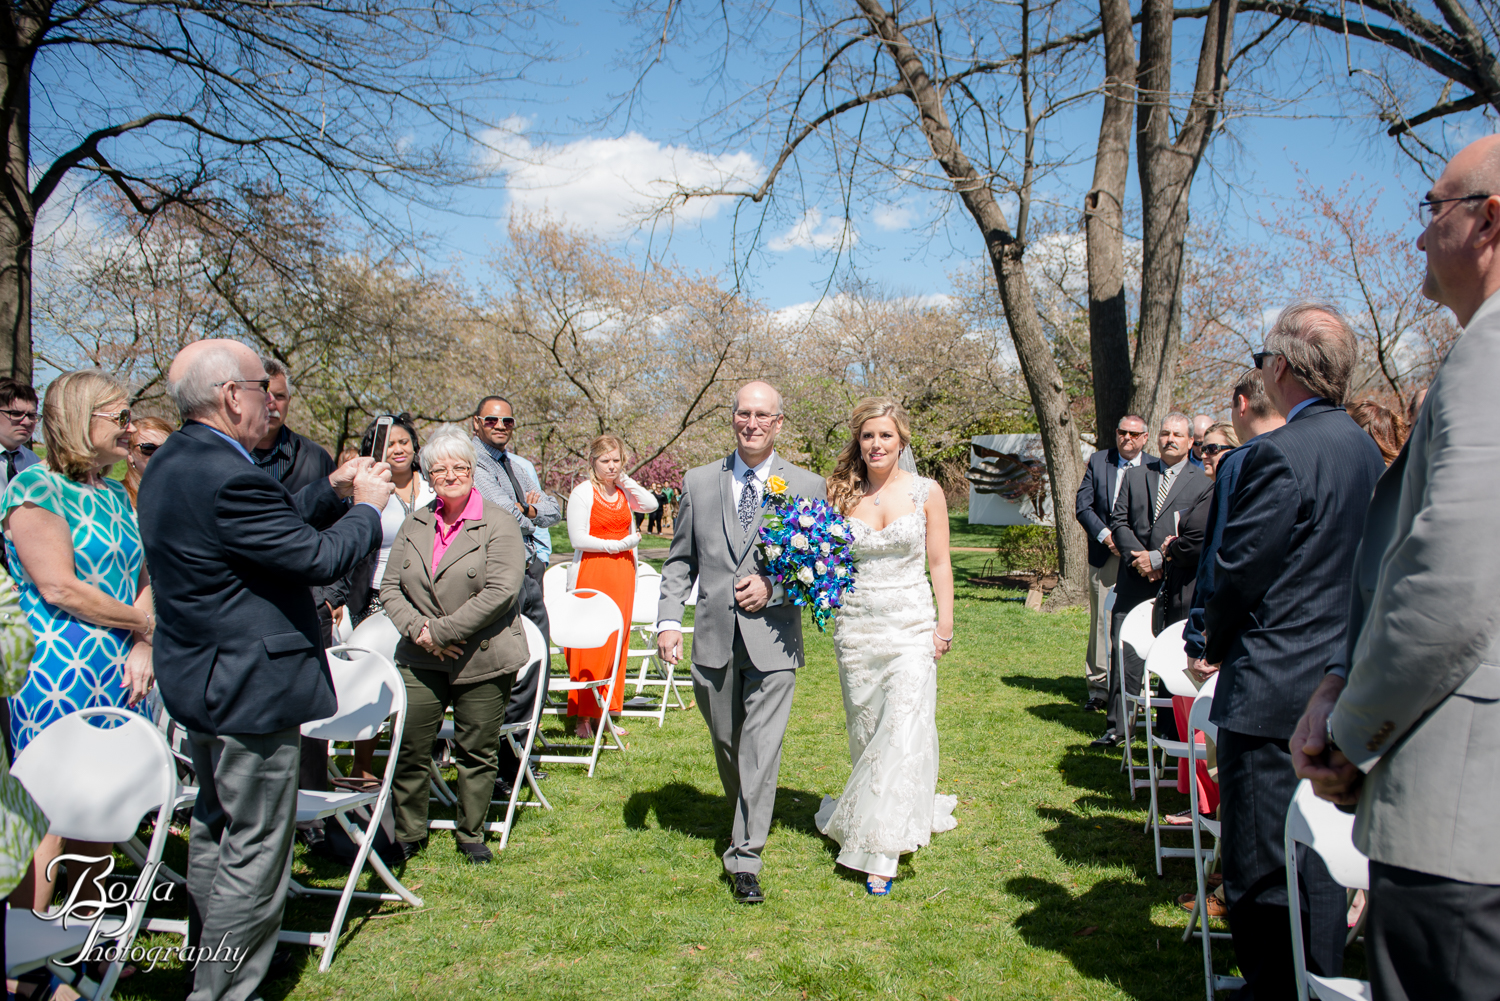 Bolla_Photography_St_Louis_wedding_photographer_Morgando_Blues_hockey_Botanical_Gardens_spring-0178.jpg